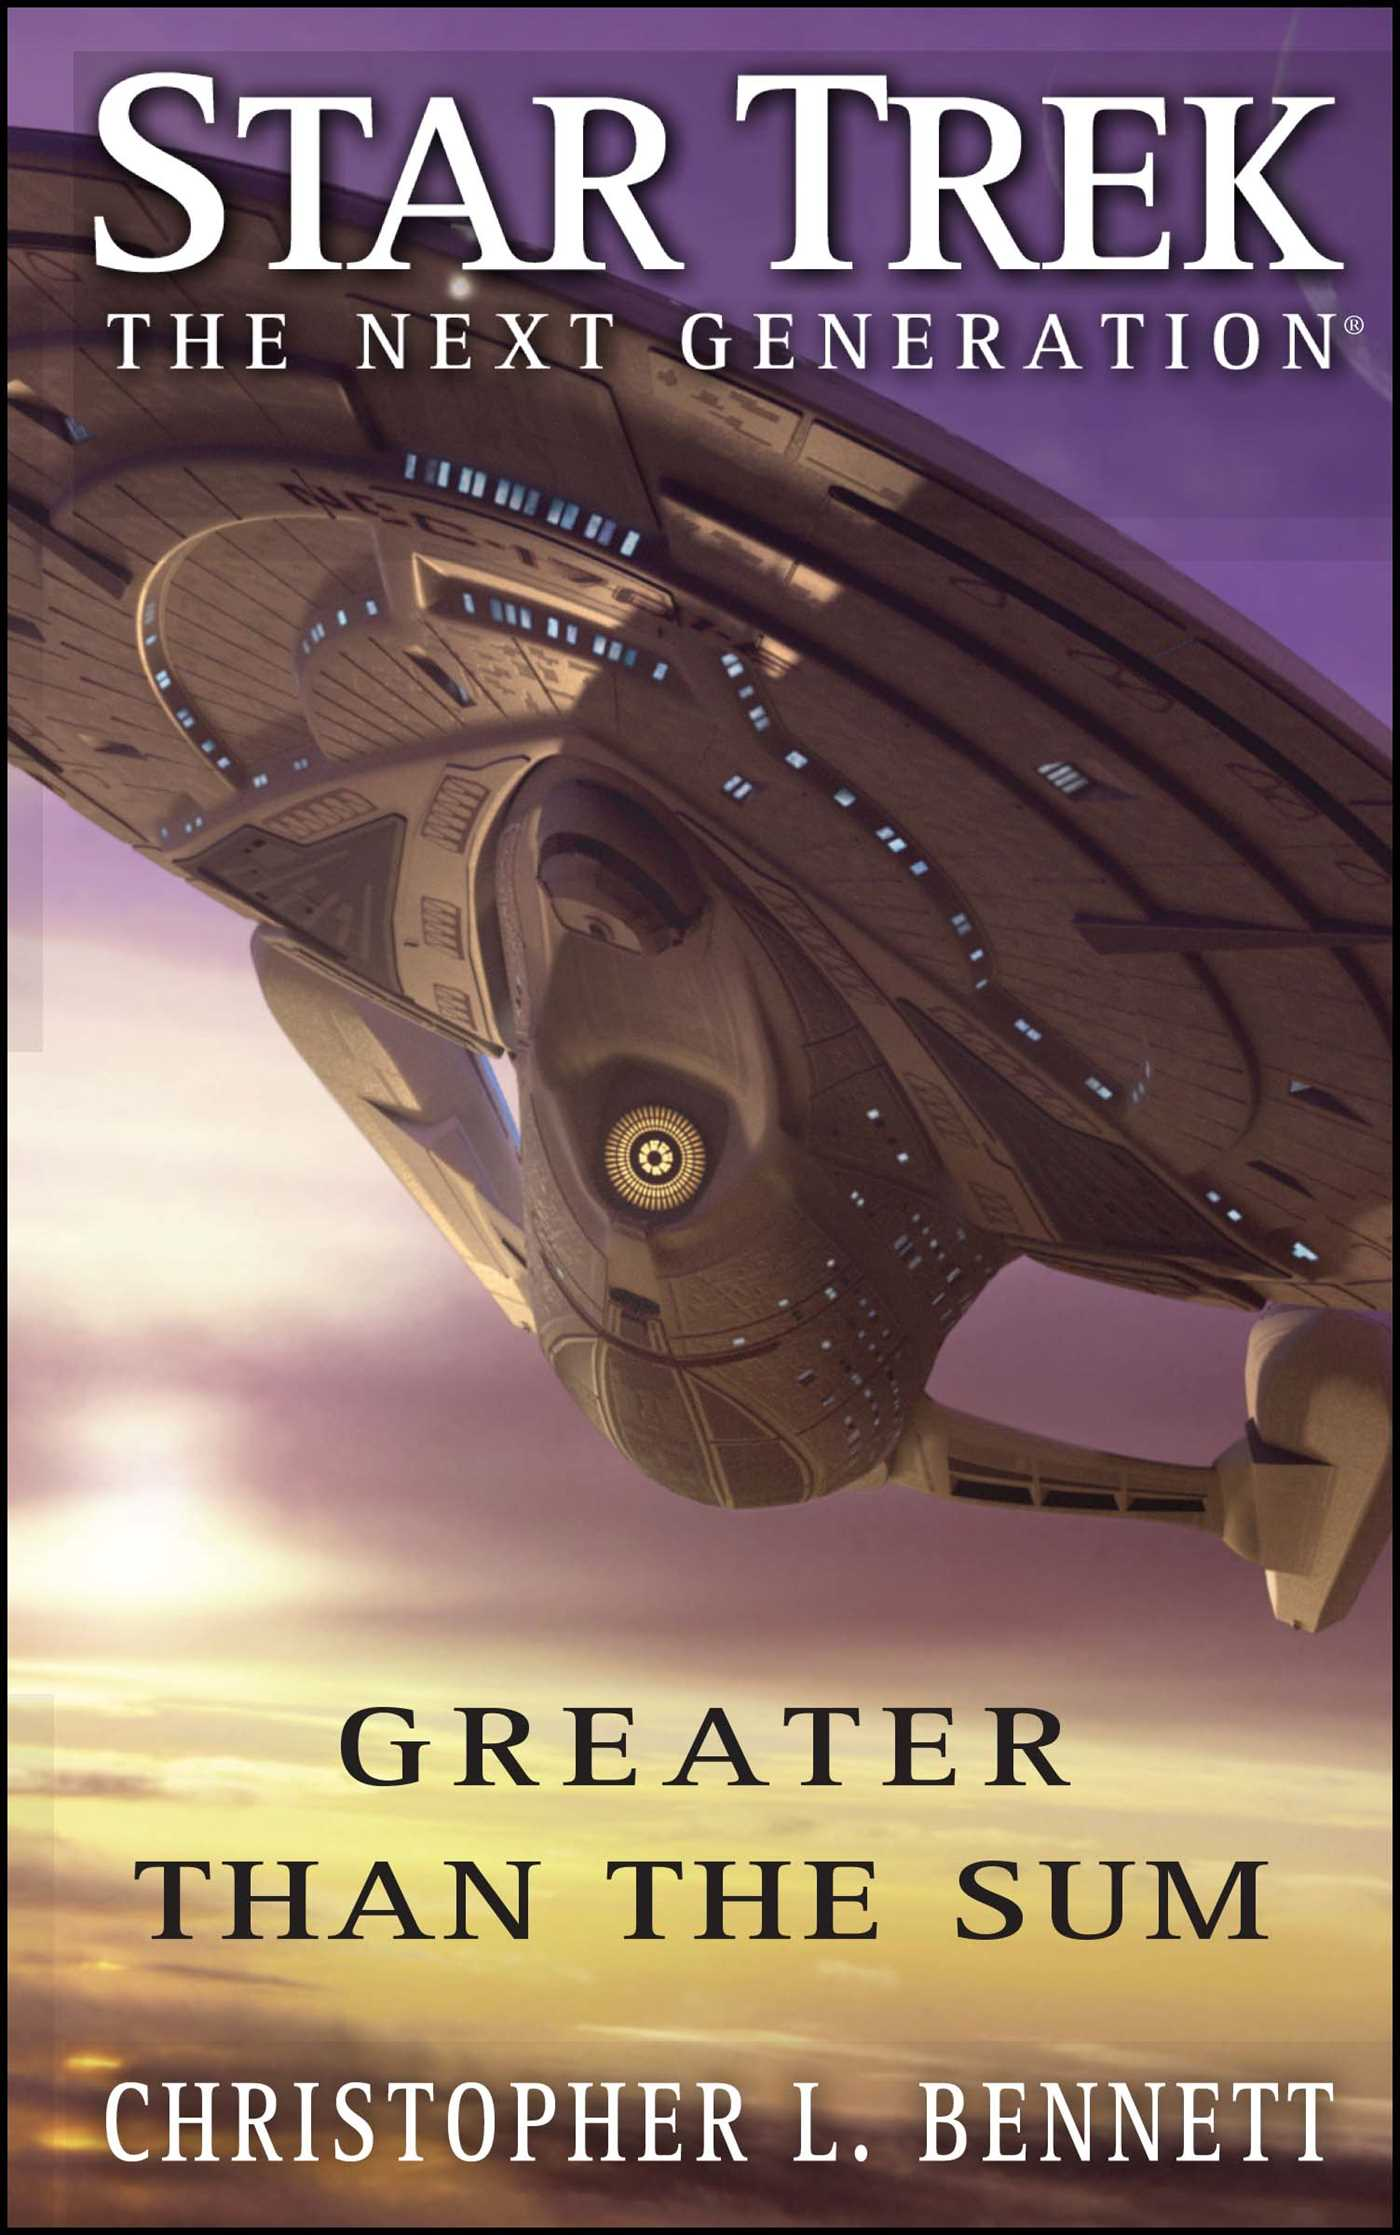 Star trek the next generation greater than the sum 9781416572169 hr